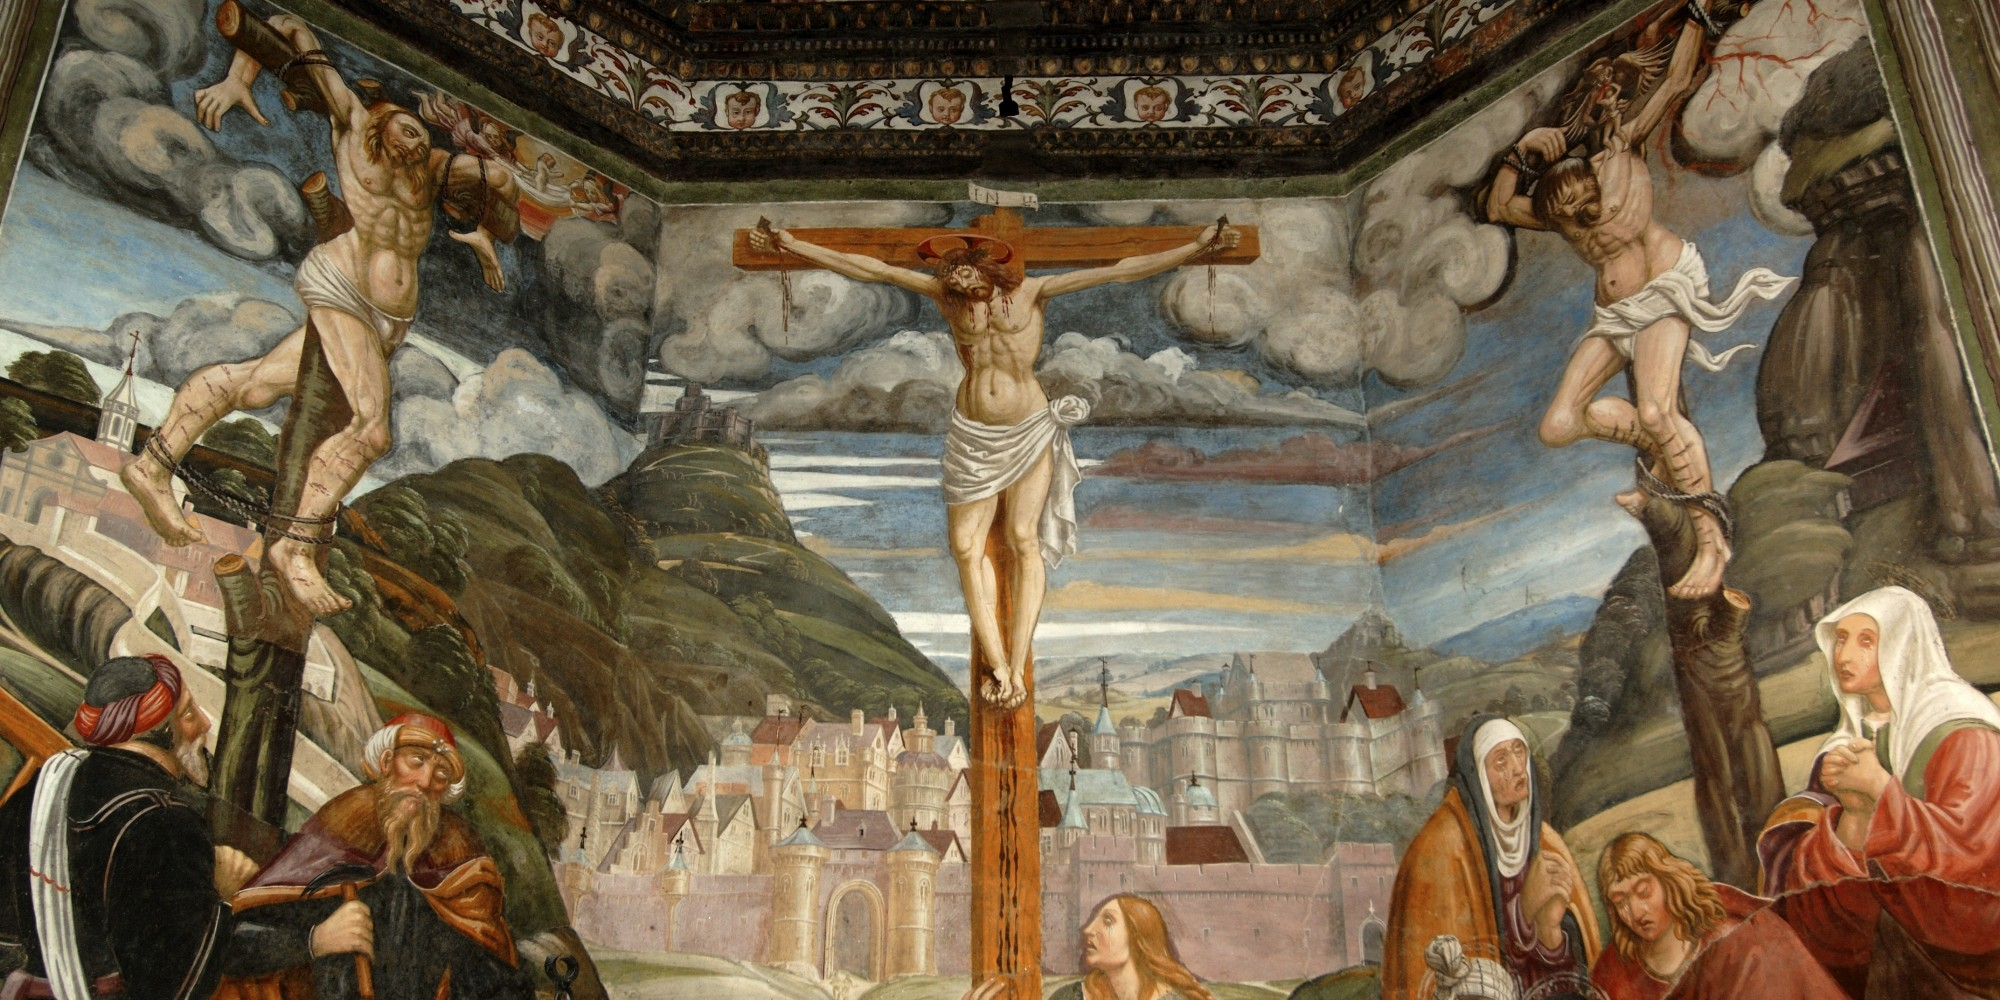 the death of jesus and the I outline thesis : john portrays jesus in his death as the cross-enthroned messiah who is the true dwelling place of god's glory, replacing the temple with its institutions, priesthood and cult as the locus.